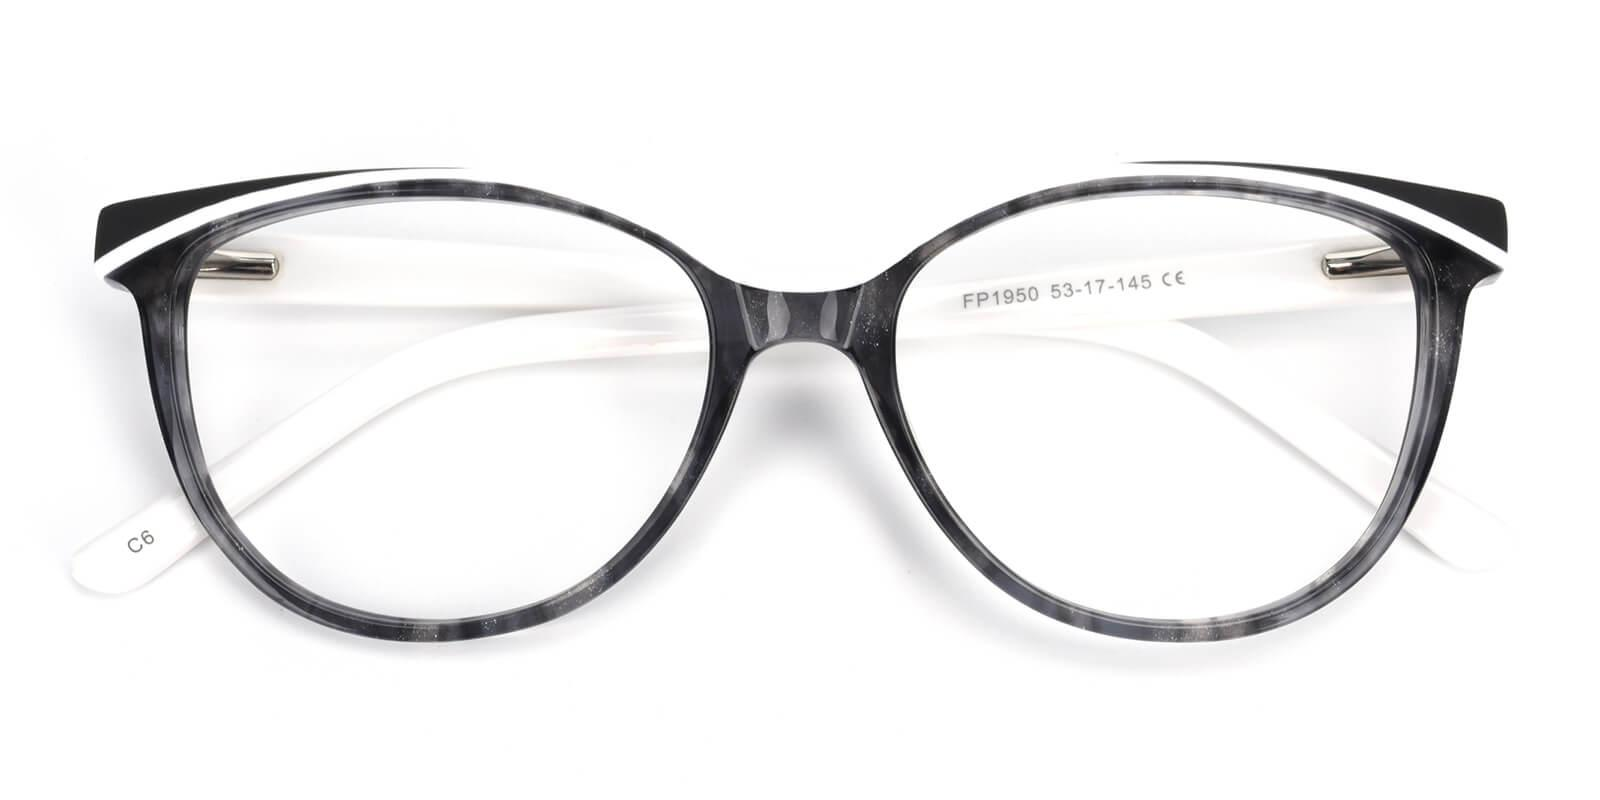 Cynthialy-White-Oval / Cat-Acetate-Eyeglasses-detail